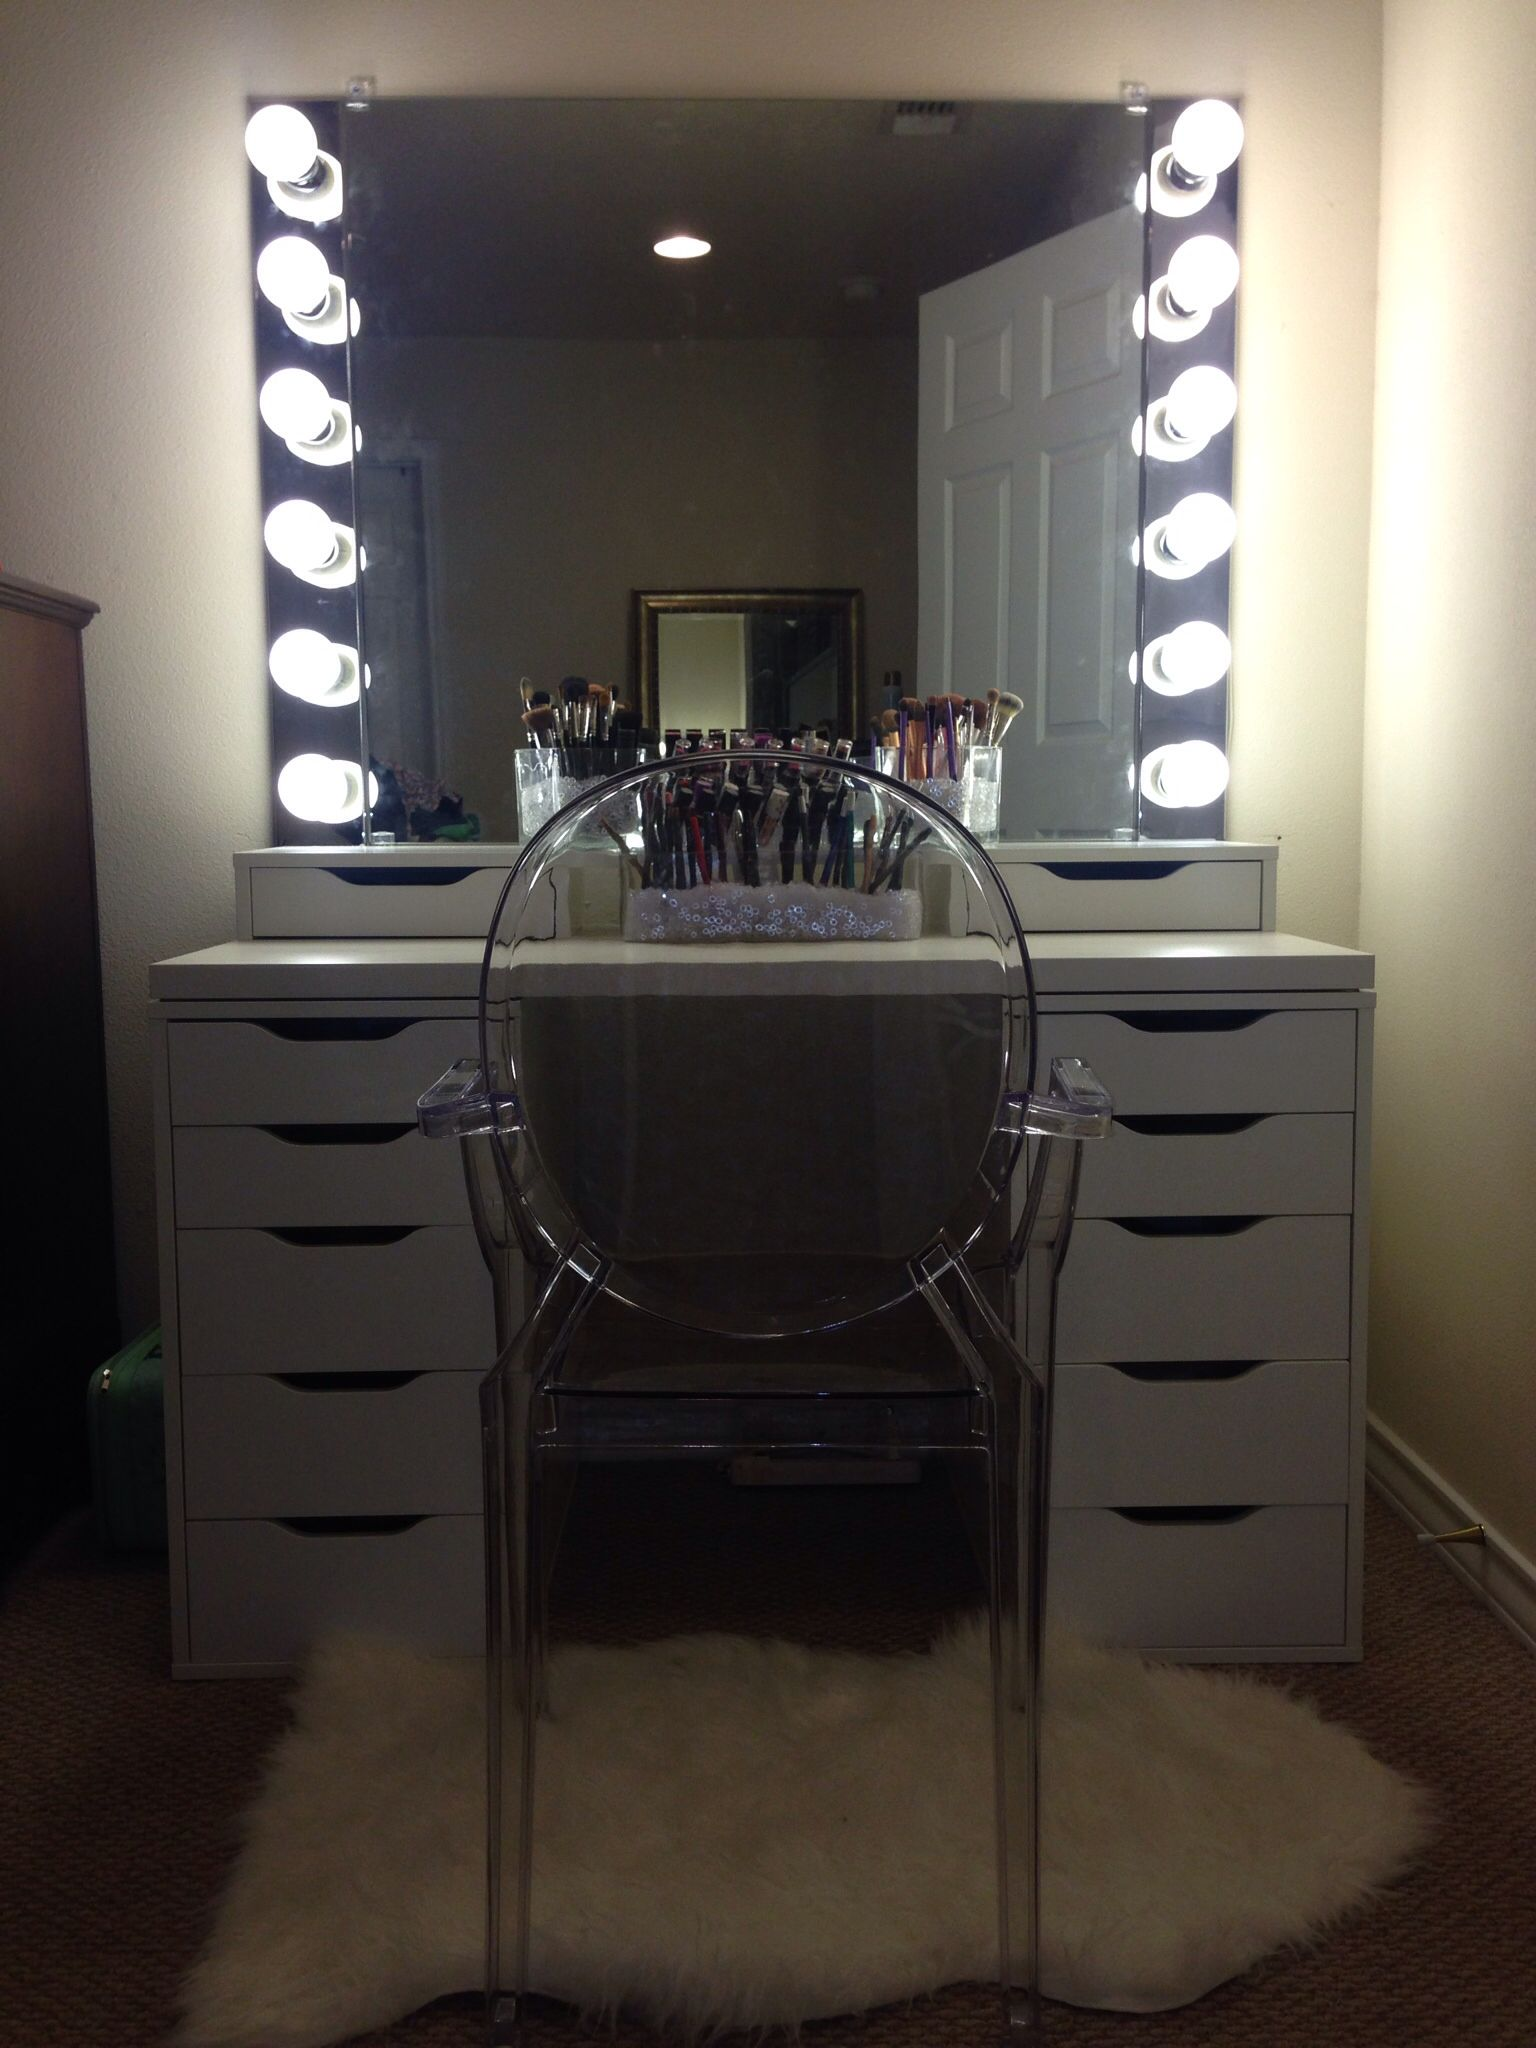 Diy Ikea Vanity With Lights Ikea Vanity Diy Vanity Mirror